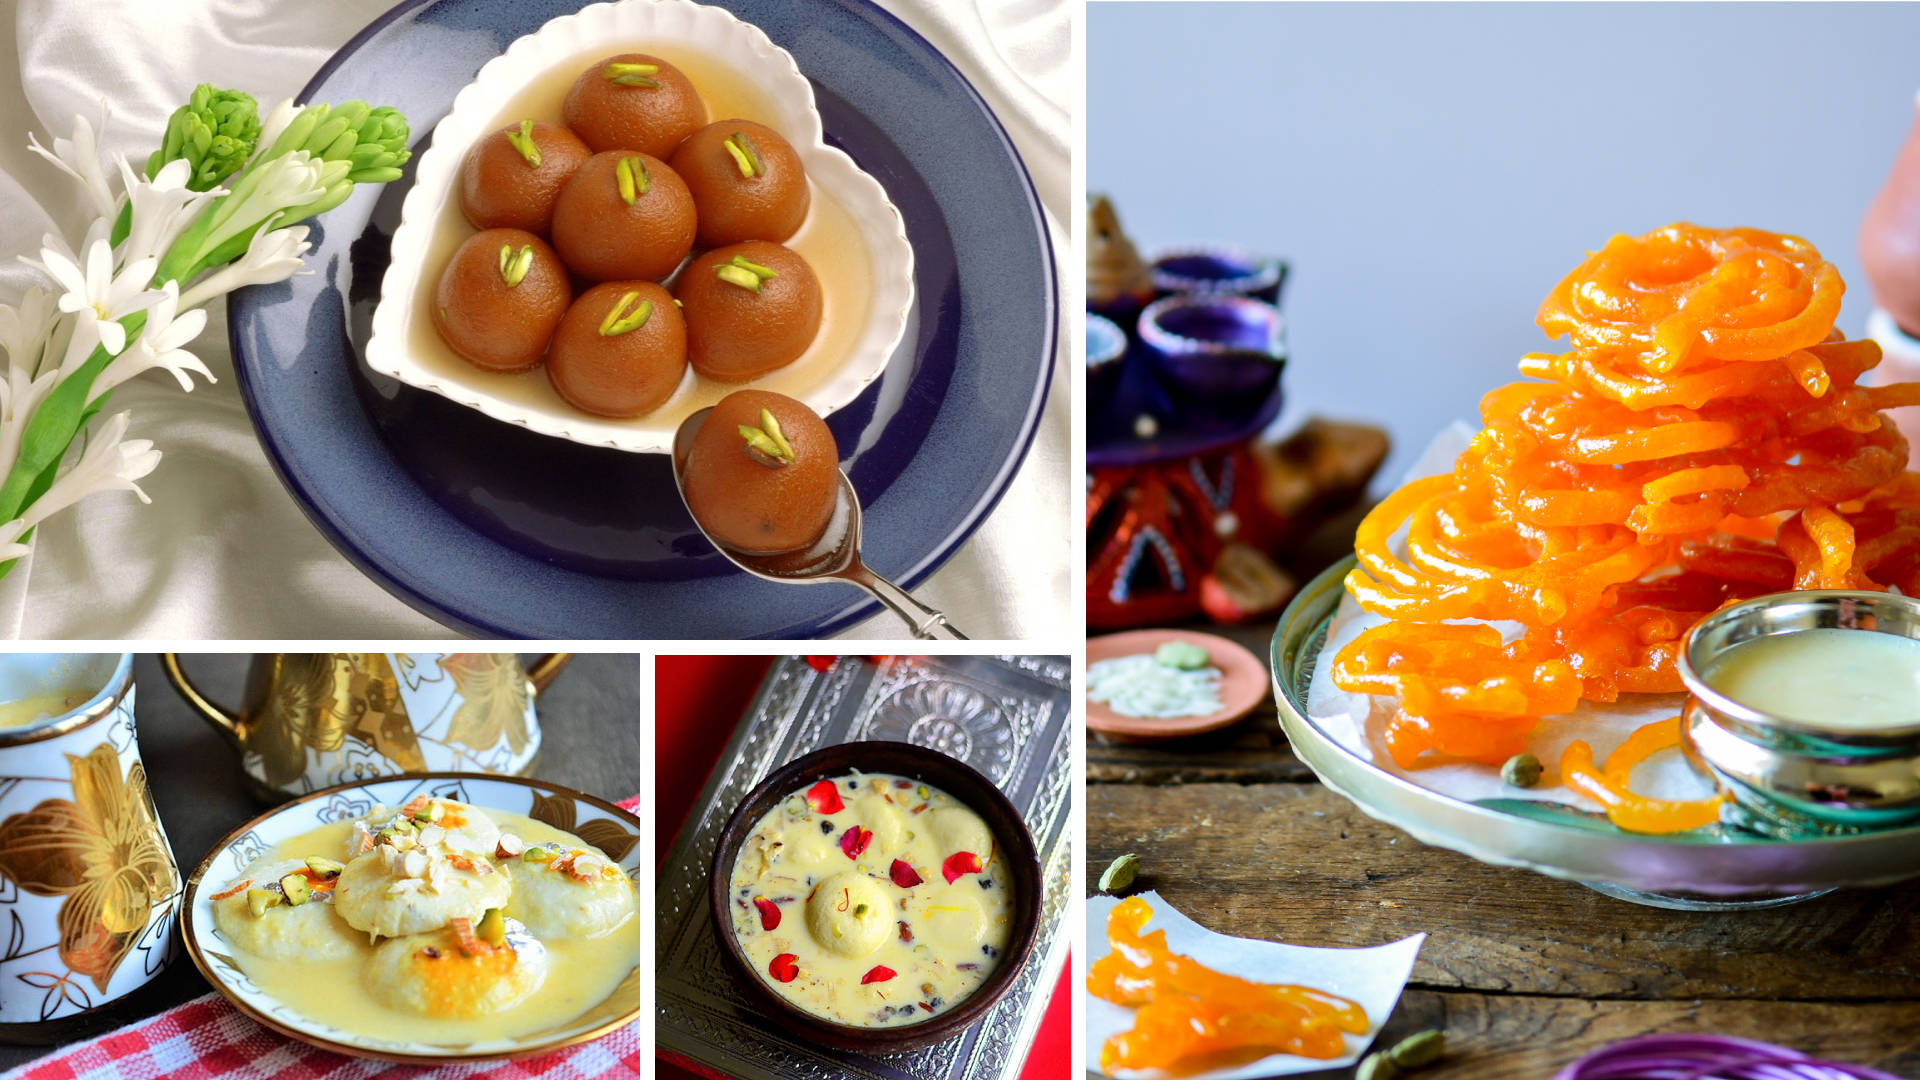 A Gulab Jamun, Jalebi And Ras Malai Counter